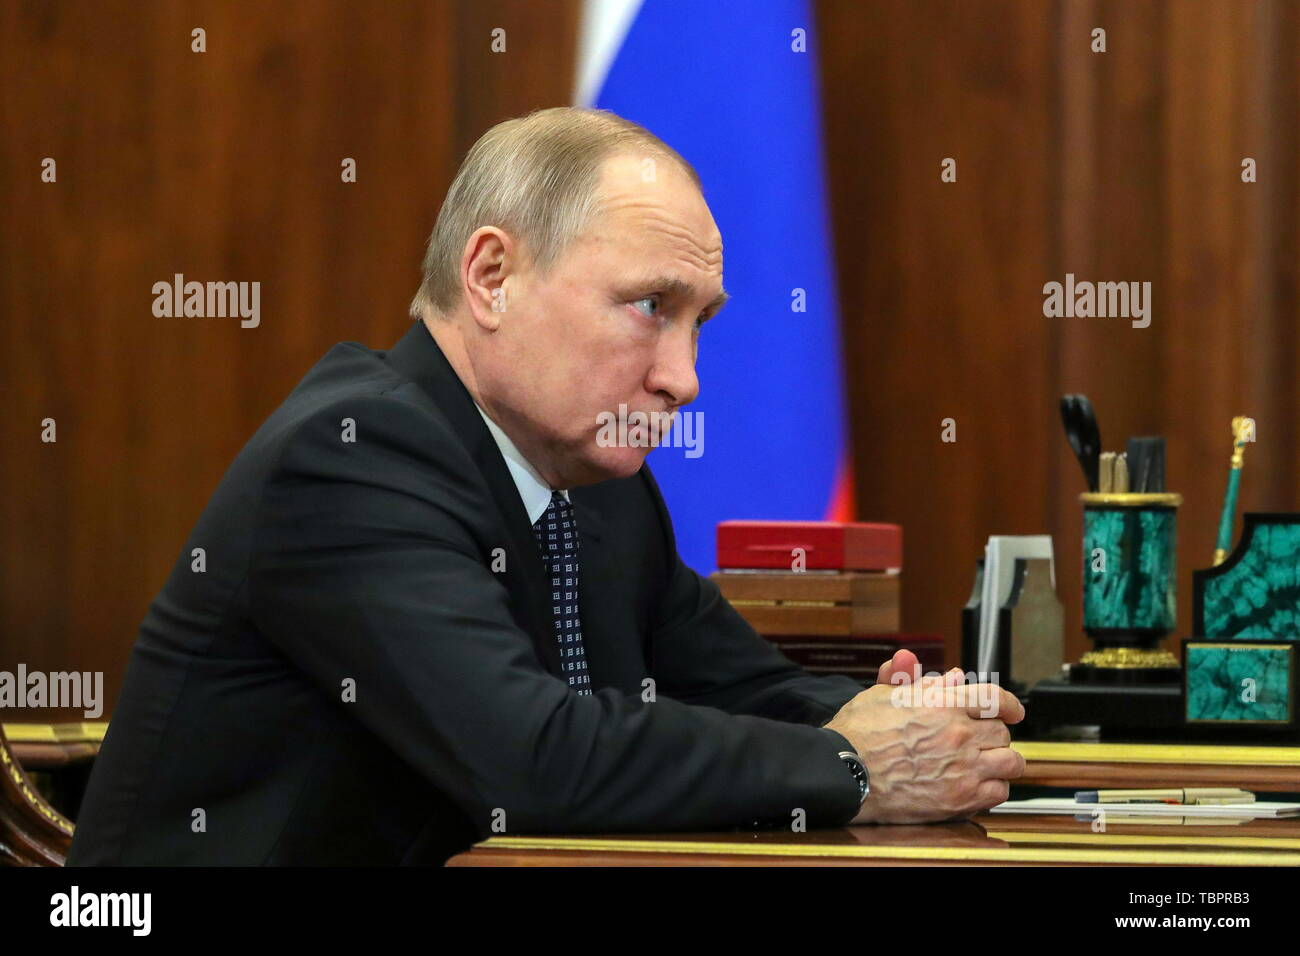 Moscow, Russia. 03rd June, 2019. MOSCOW, RUSSIA - JUNE 3, 2019: Russia's President Vladimir Putin during a meeting with Russia's Economic Development Minister Maxim Oreshkin (not in picture), at the Moscow Kremlin. Mikhail Klimentyev/Russian Presidential Press and Information Office/TASS Credit: ITAR-TASS News Agency/Alamy Live News - Stock Image